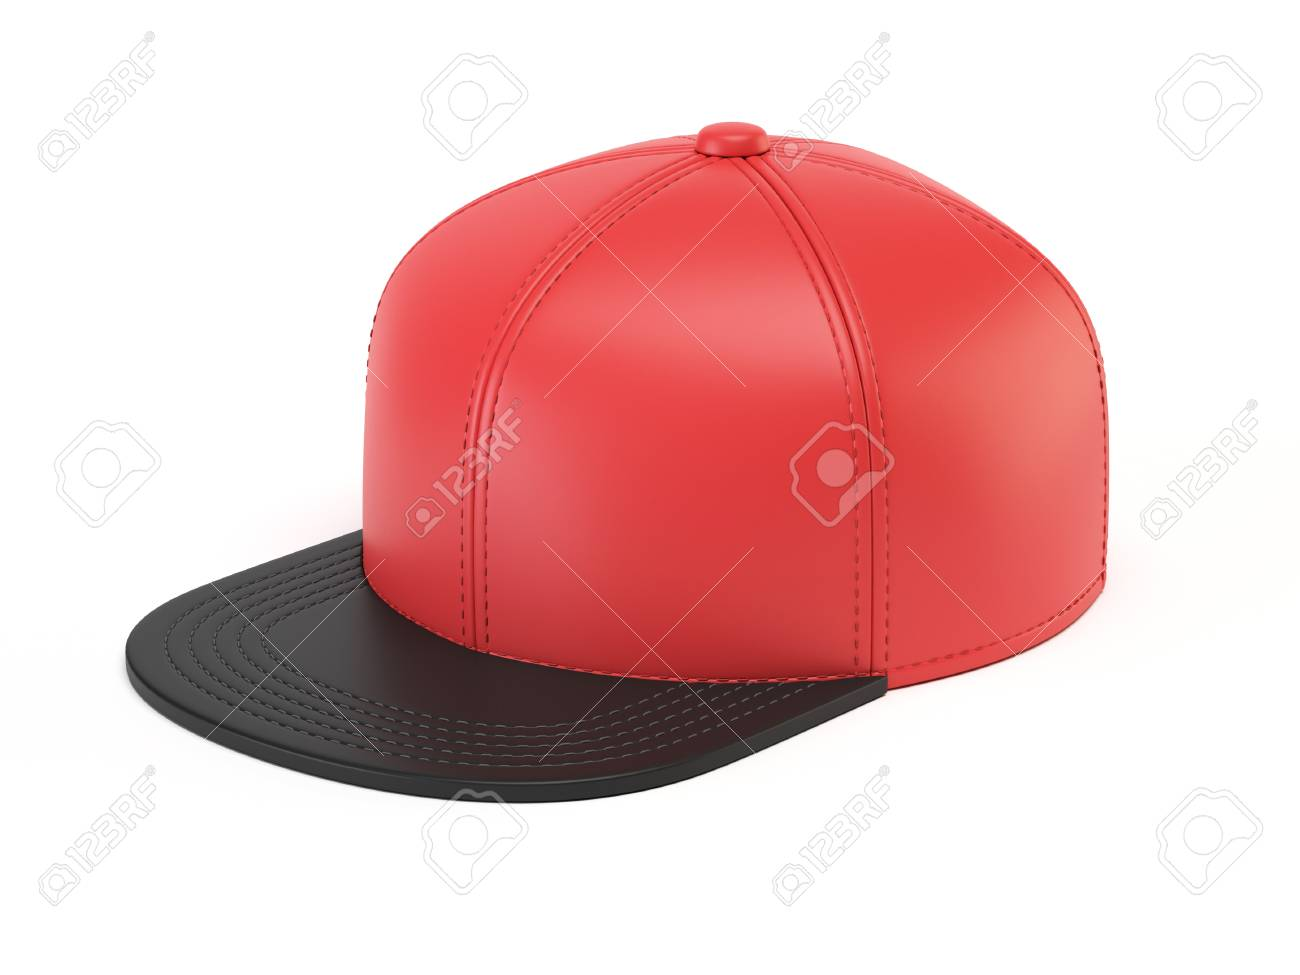 Black And Red Snap Back Mock Up, Blank Hat Template, Isolated ...